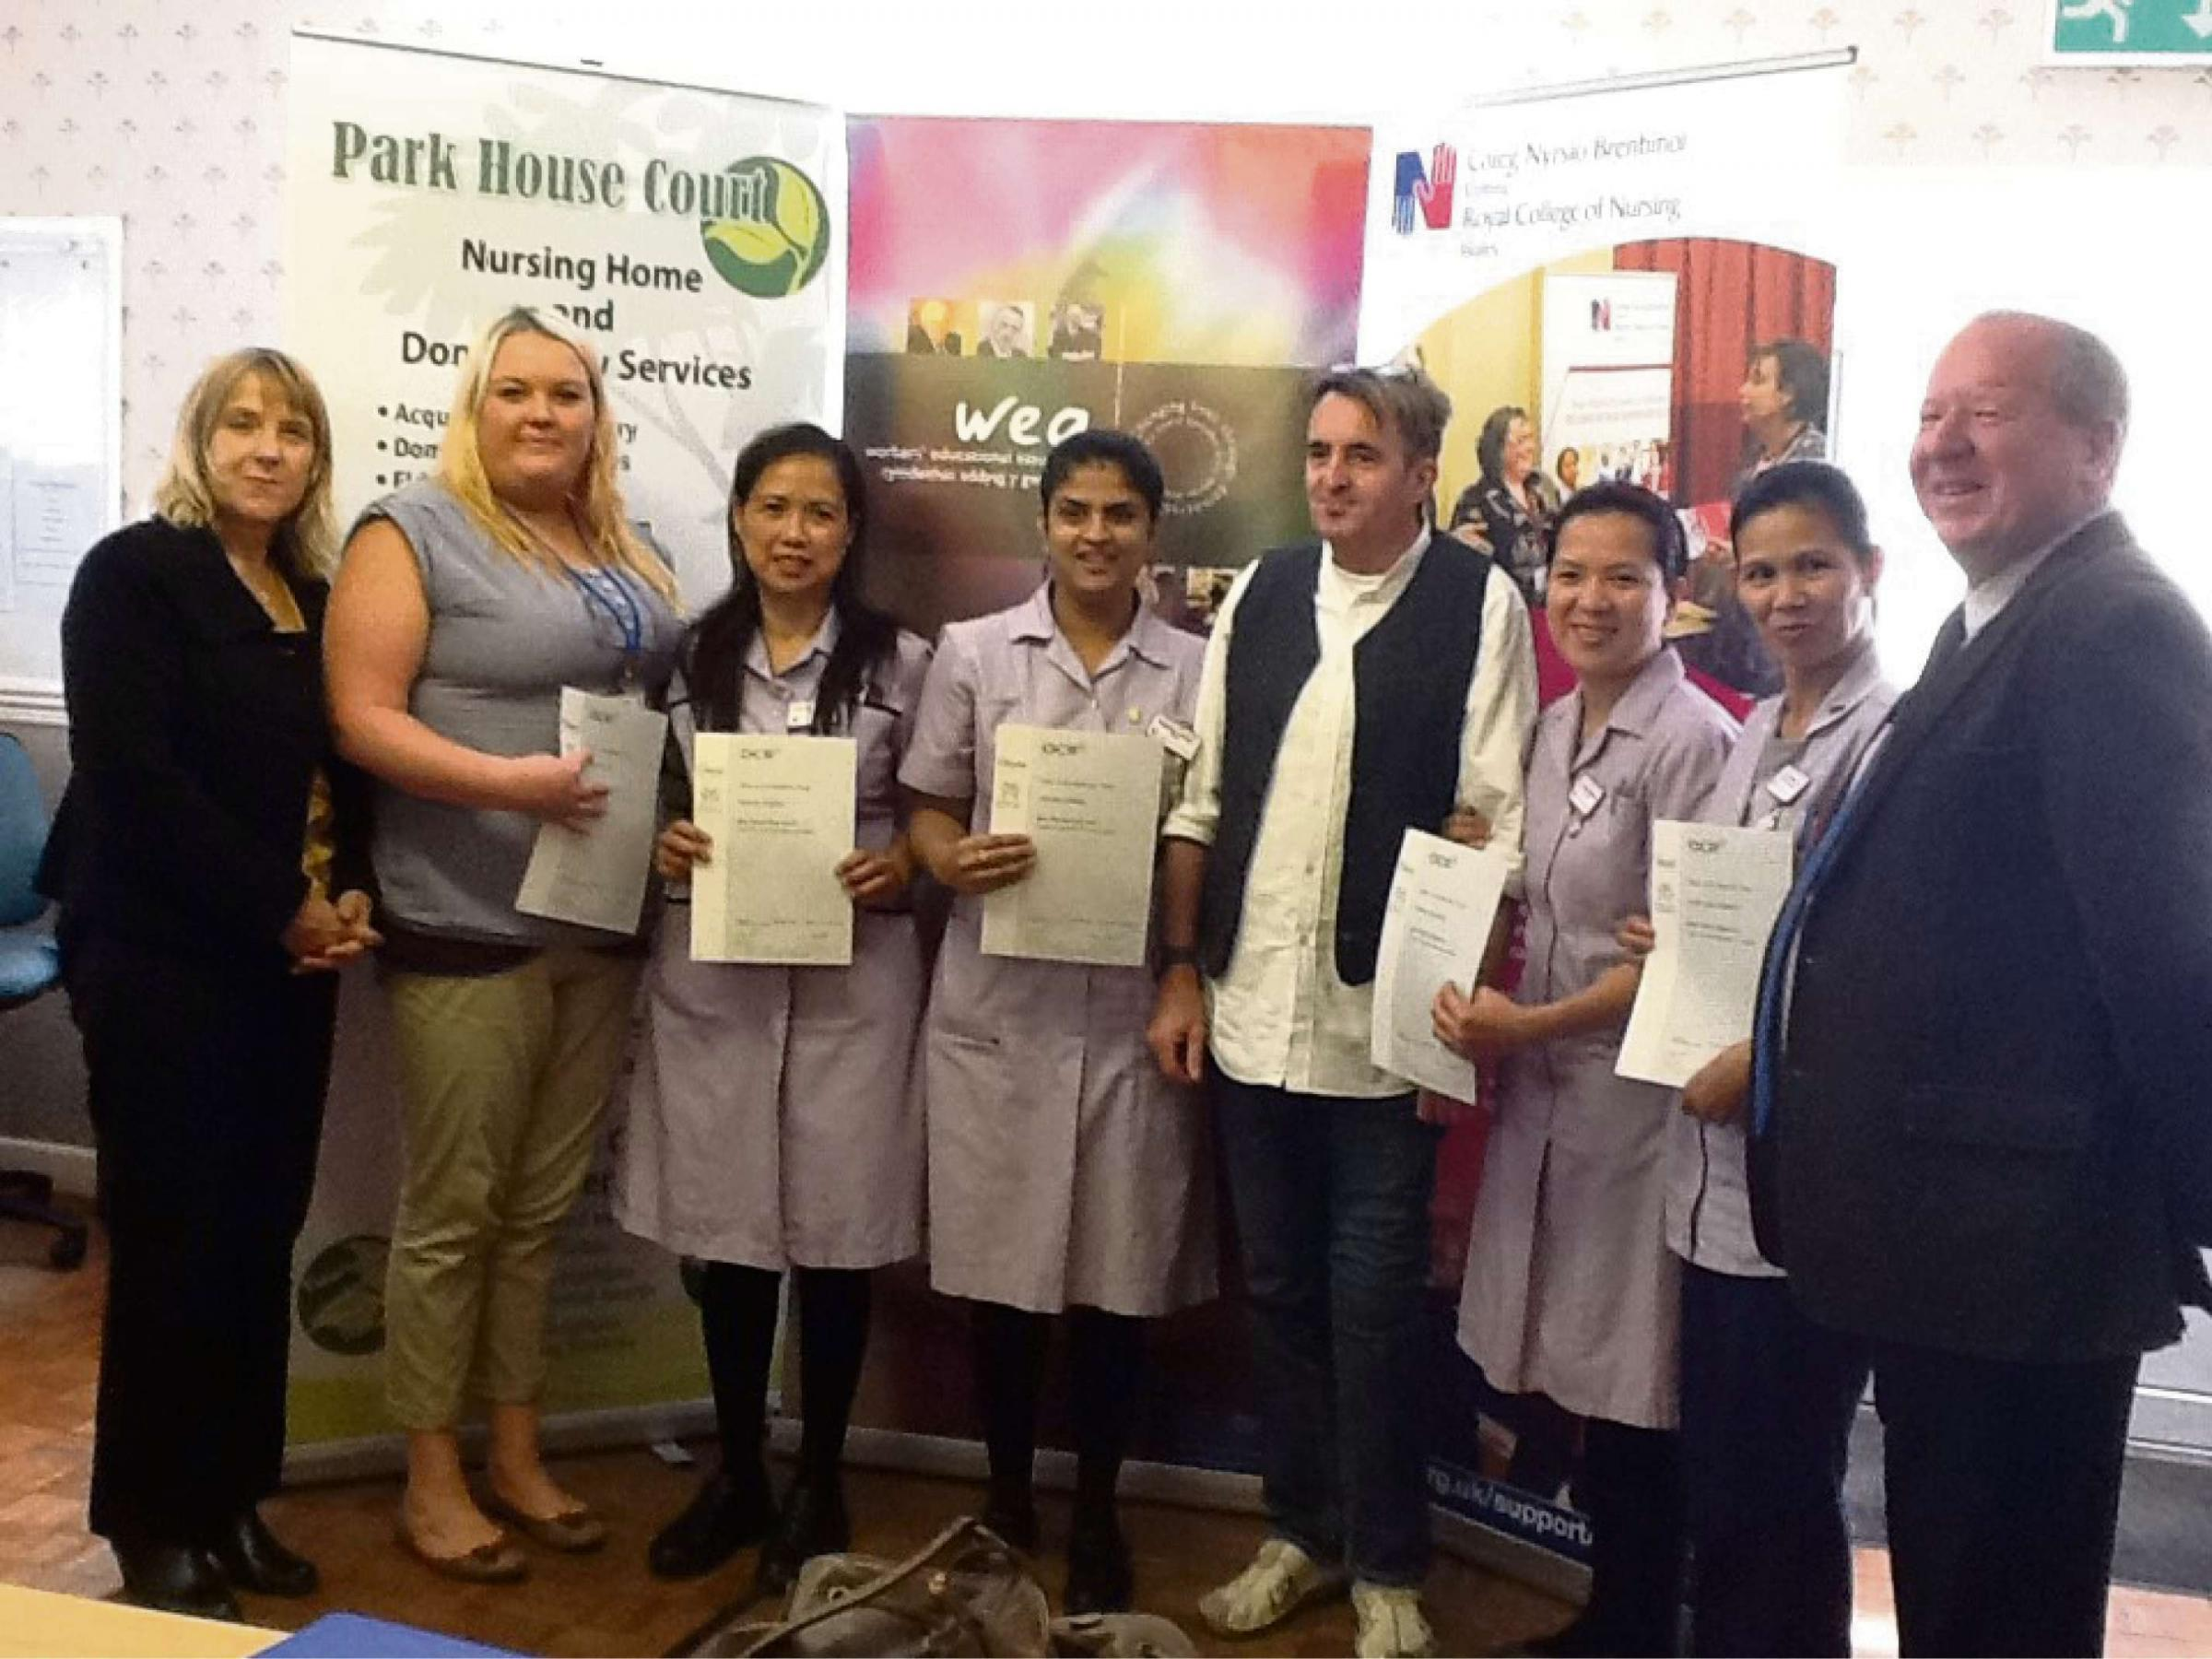 Qualifications Boost For Park House Court Nursing Home Staff From Western Telegraph